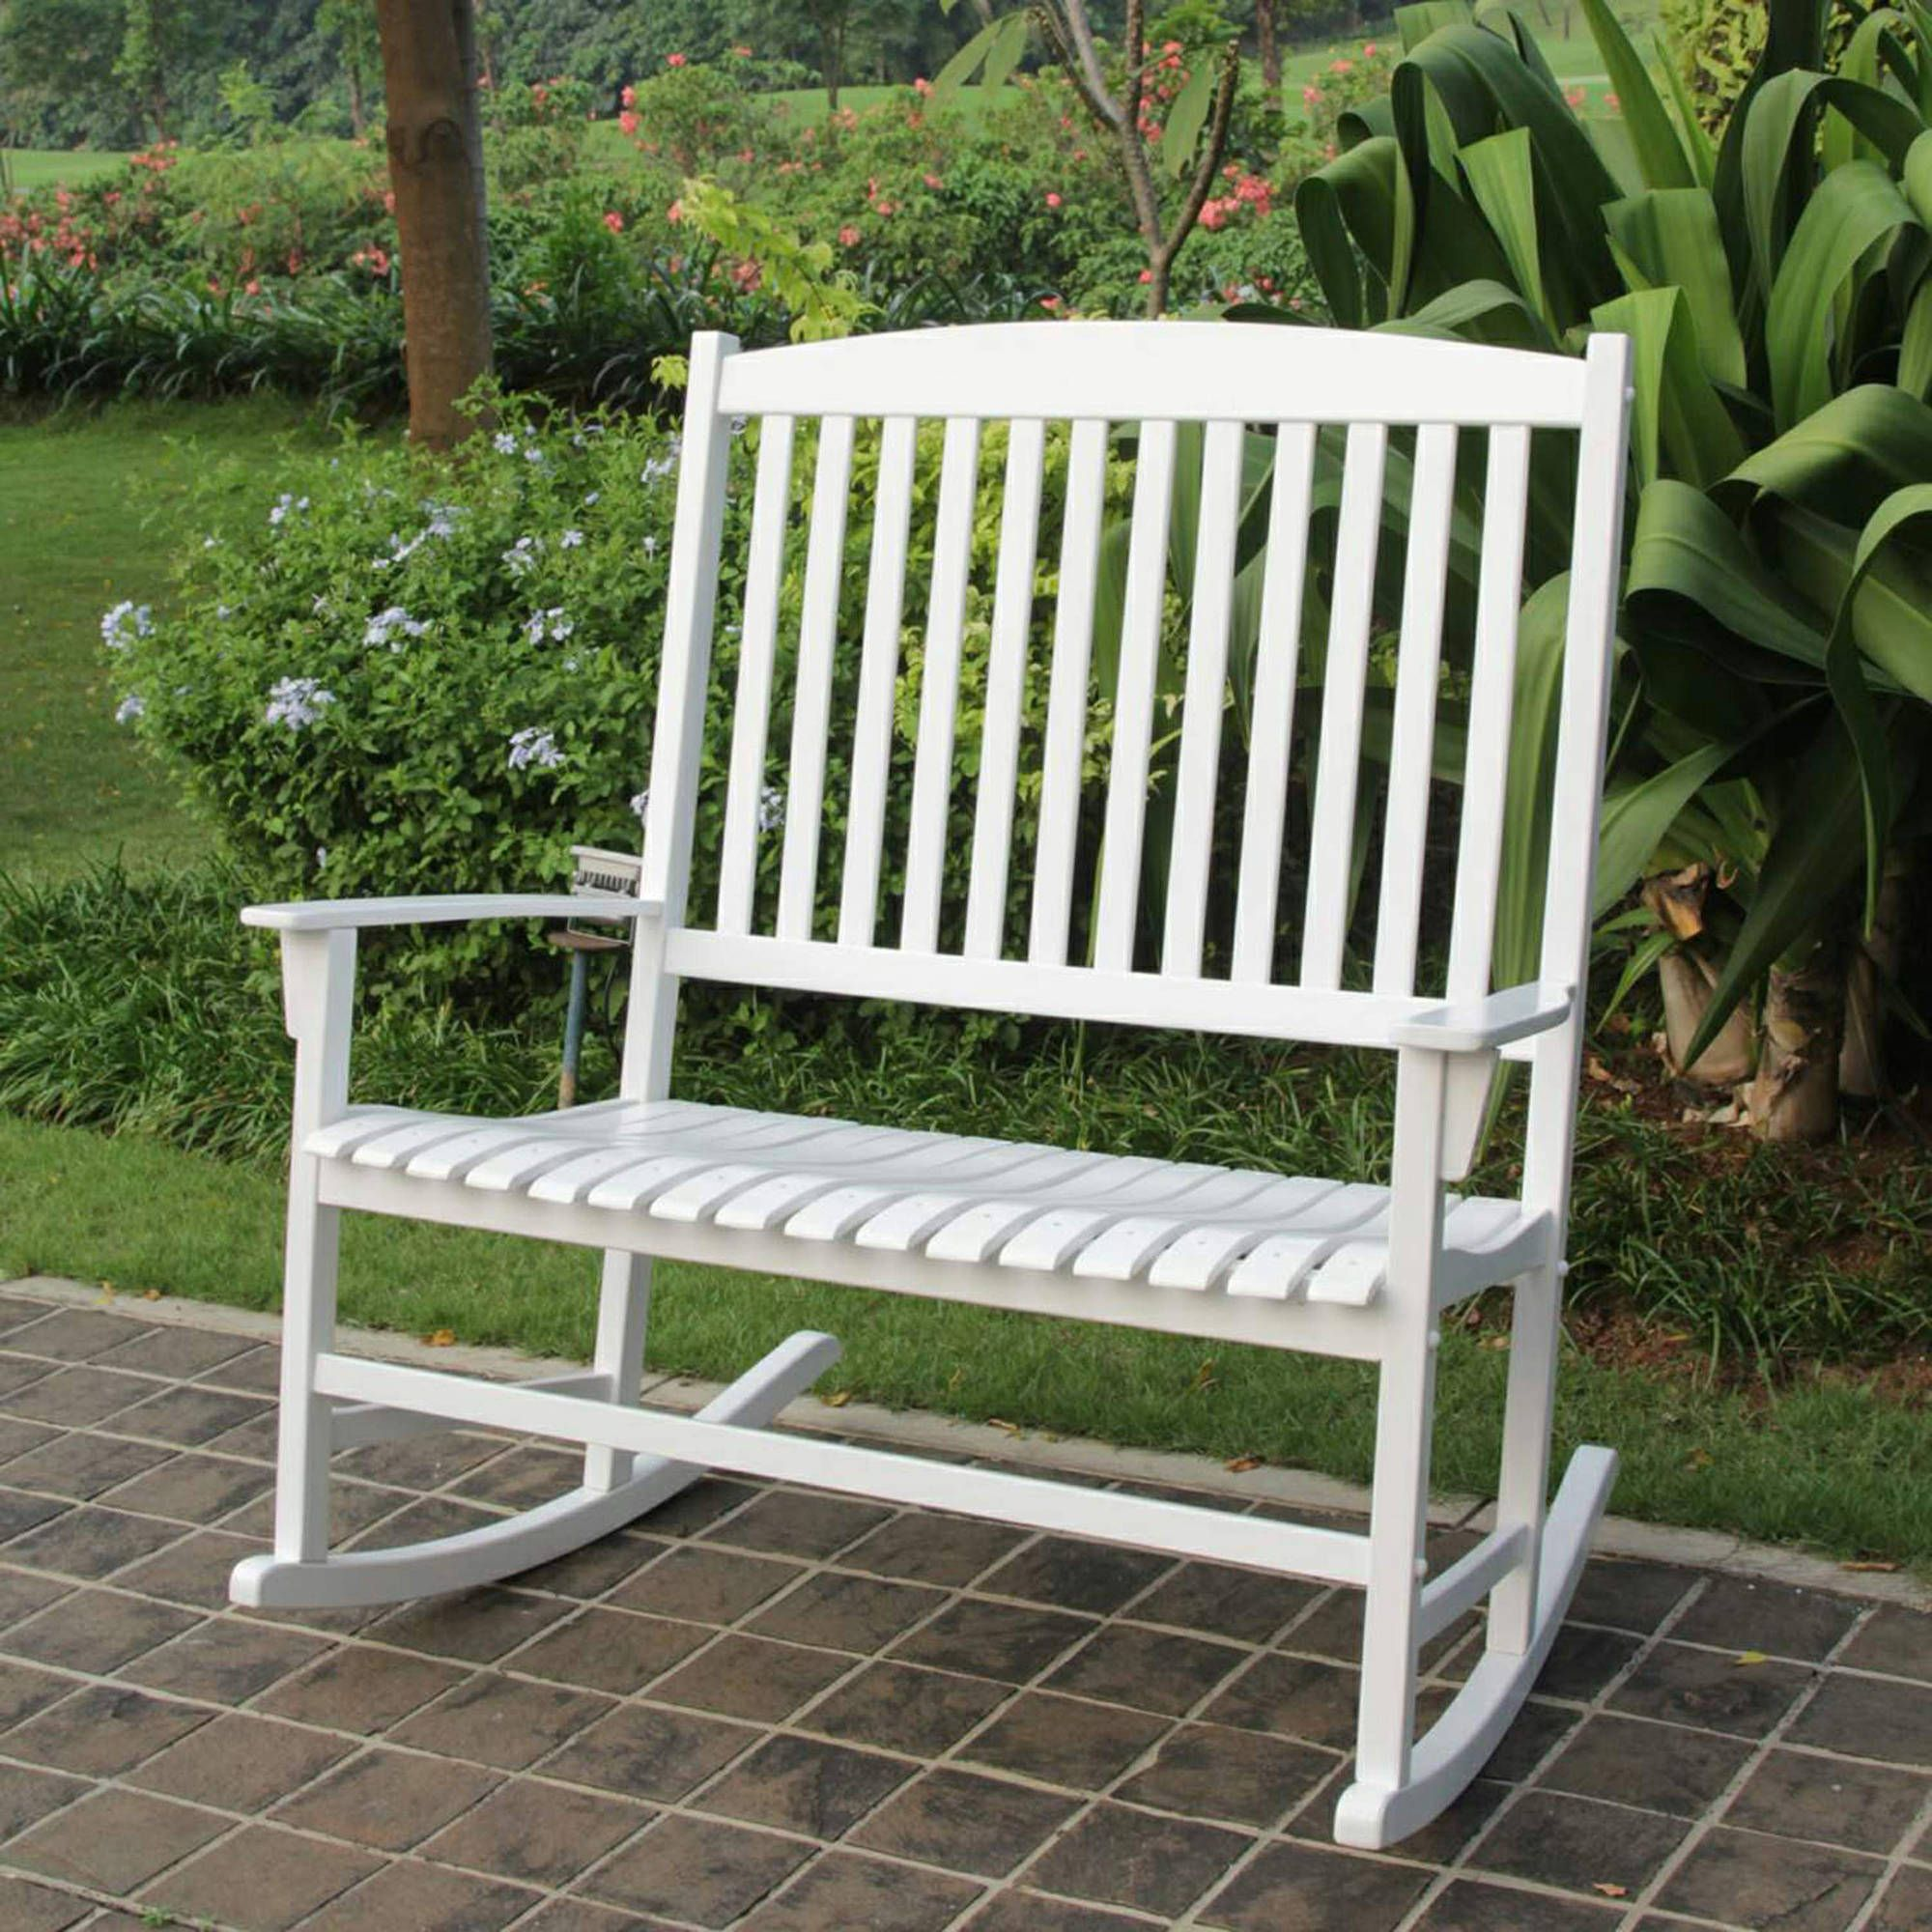 mainstays outdoor 2 person double rocking chair